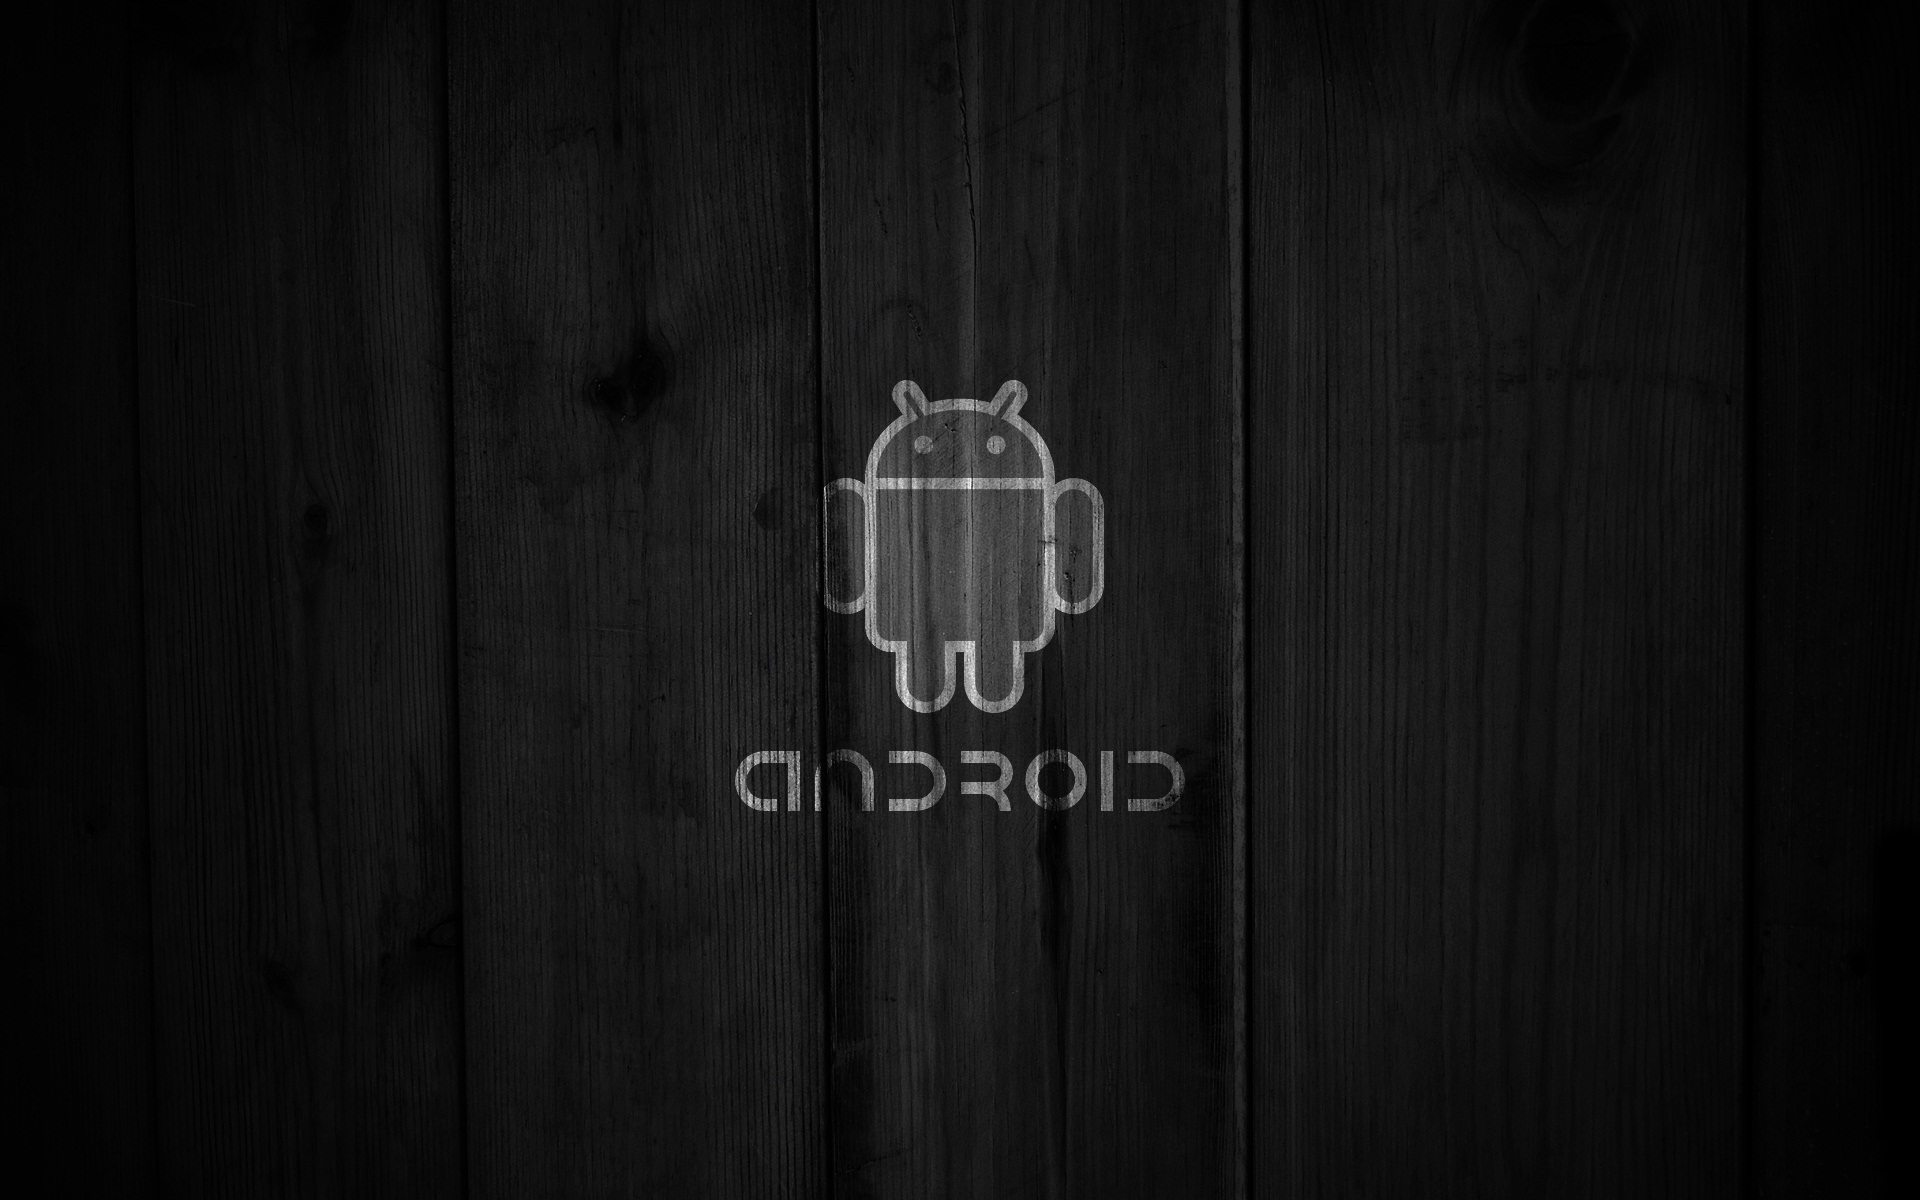 Android Dial Codes